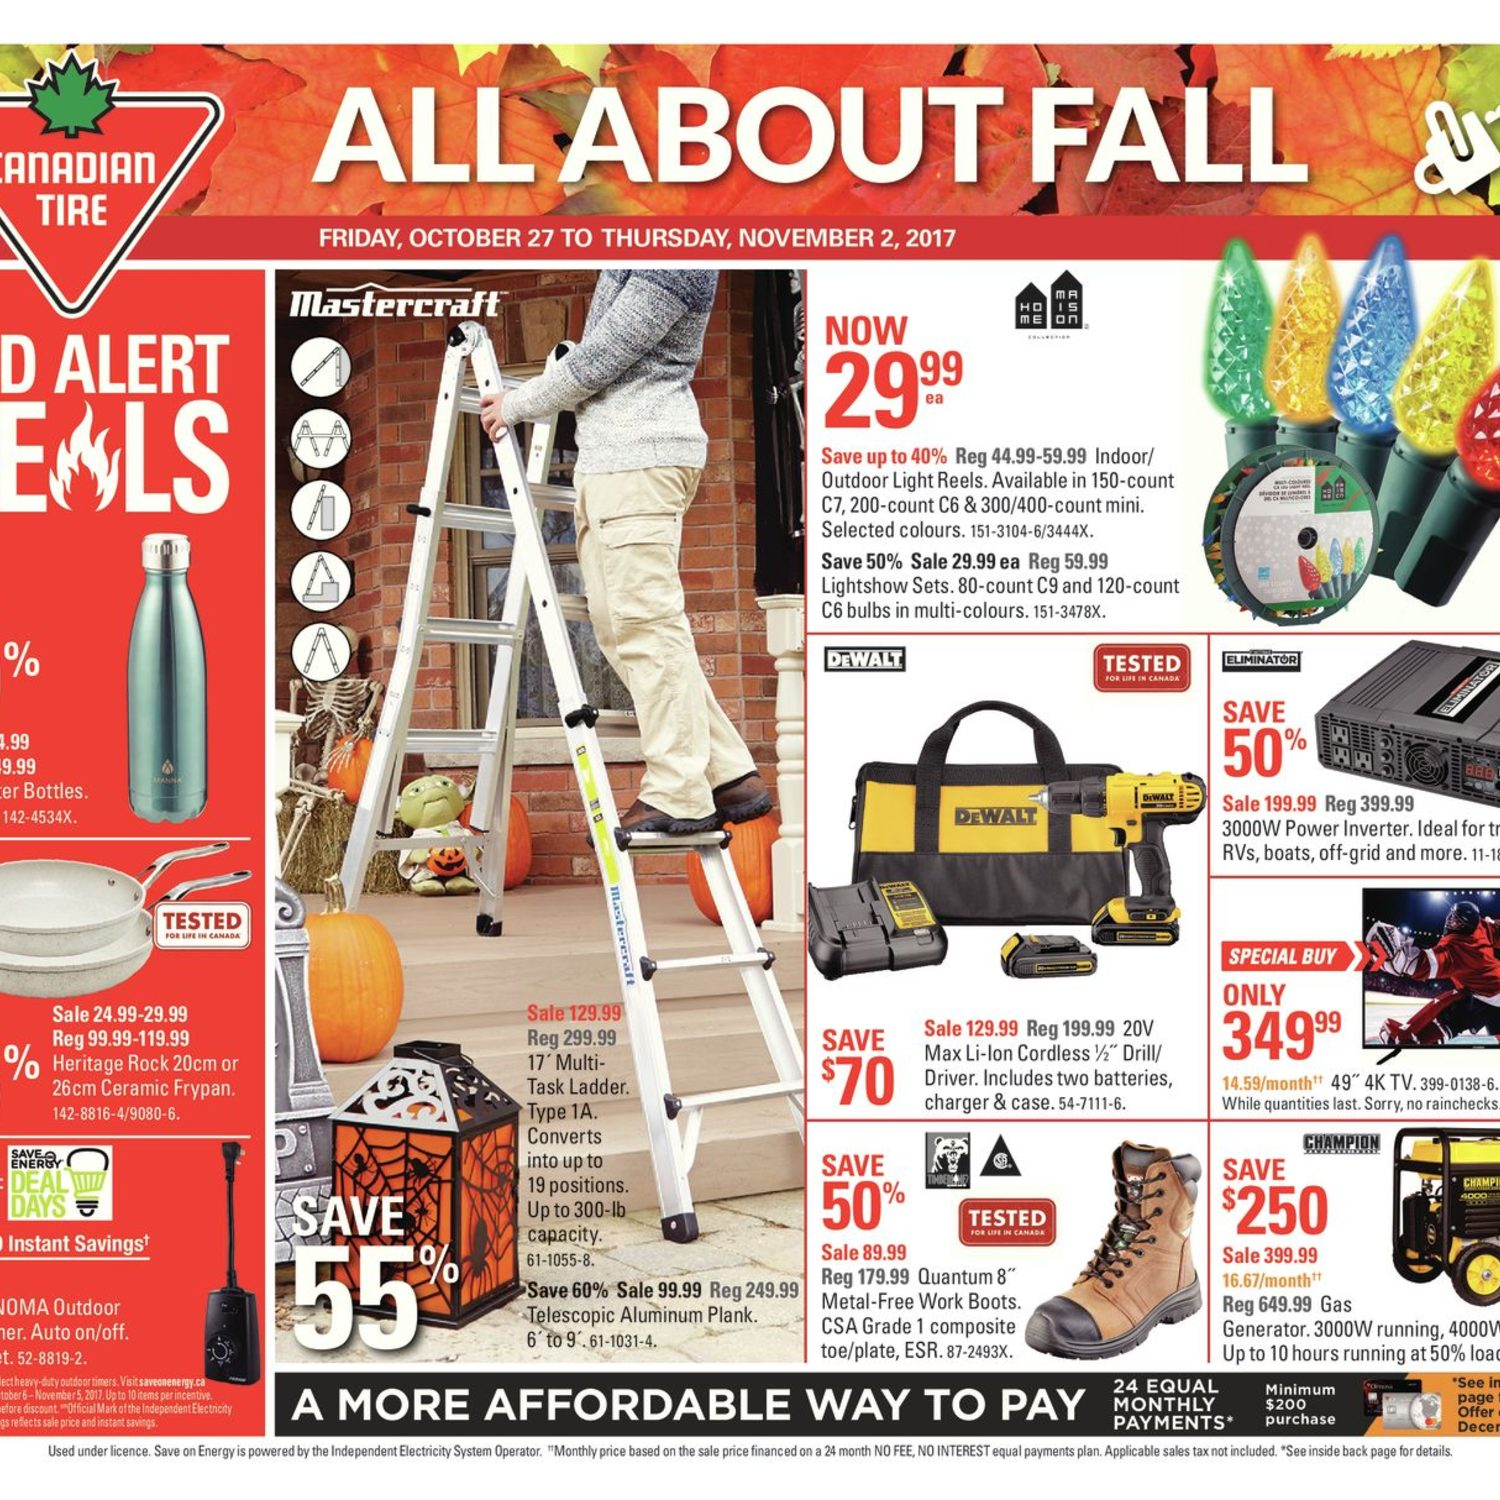 Canadian Tire Weekly Flyer Weekly All About Fall Oct